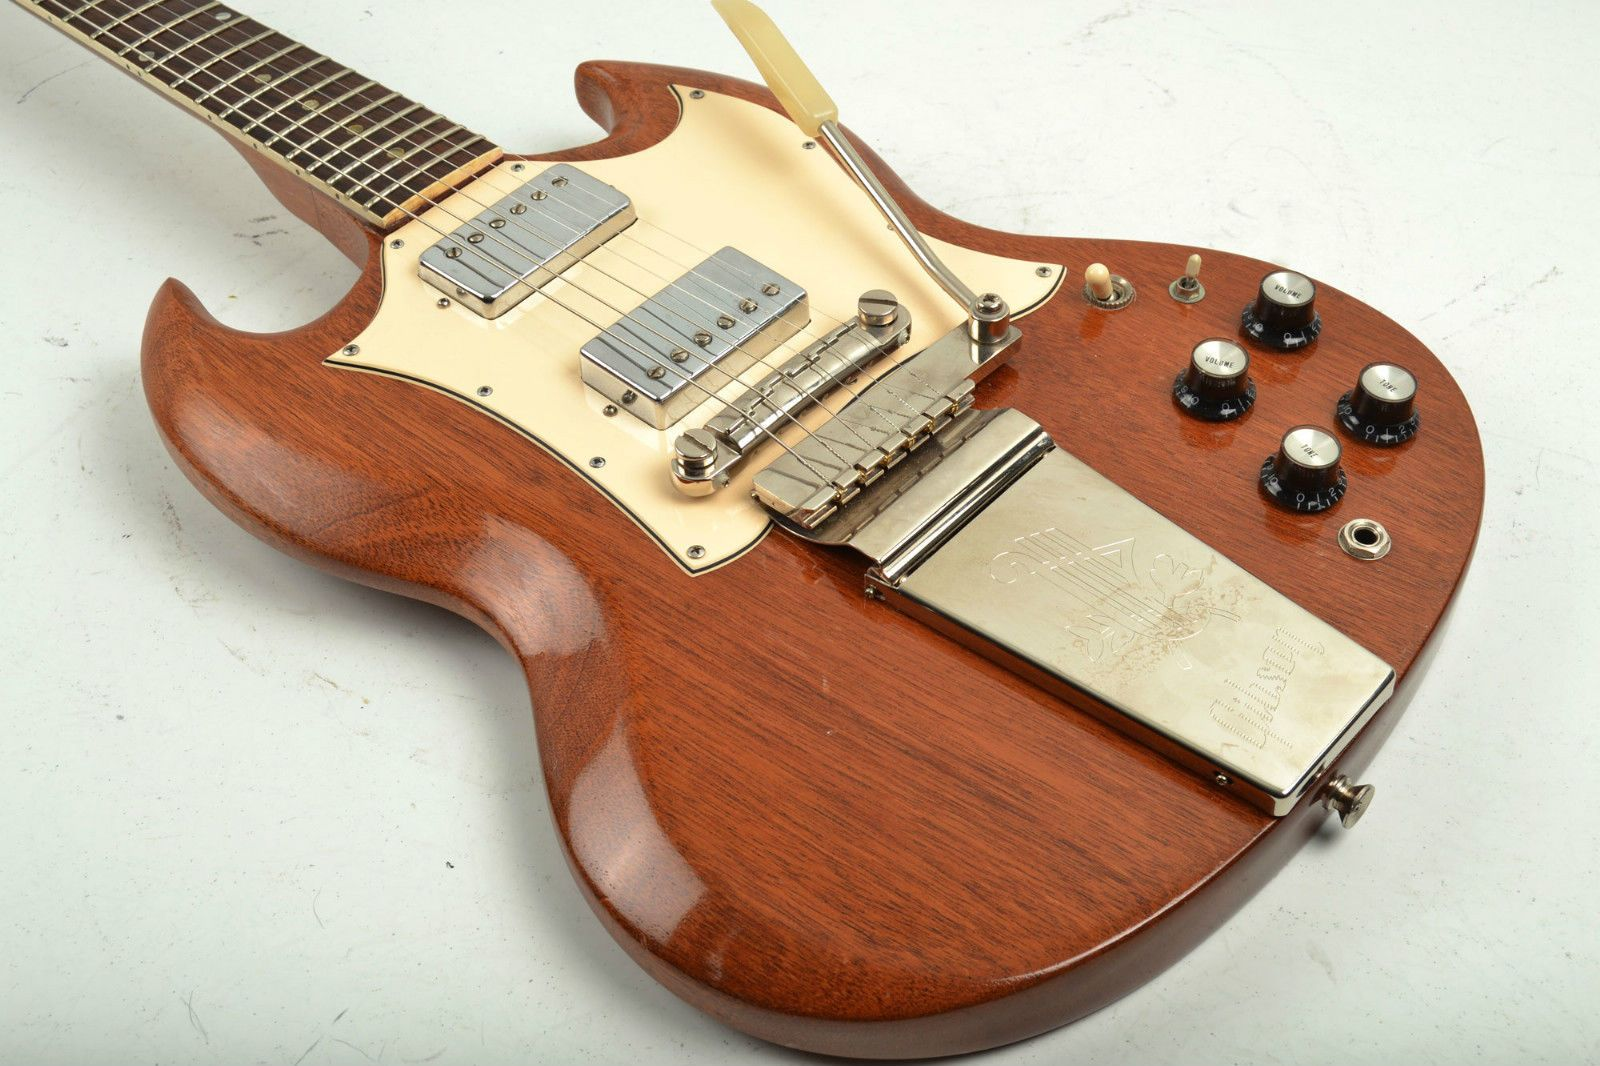 vintage 1969 gibson sg special converted humbuckers refinished guitar modified [ 1600 x 1066 Pixel ]